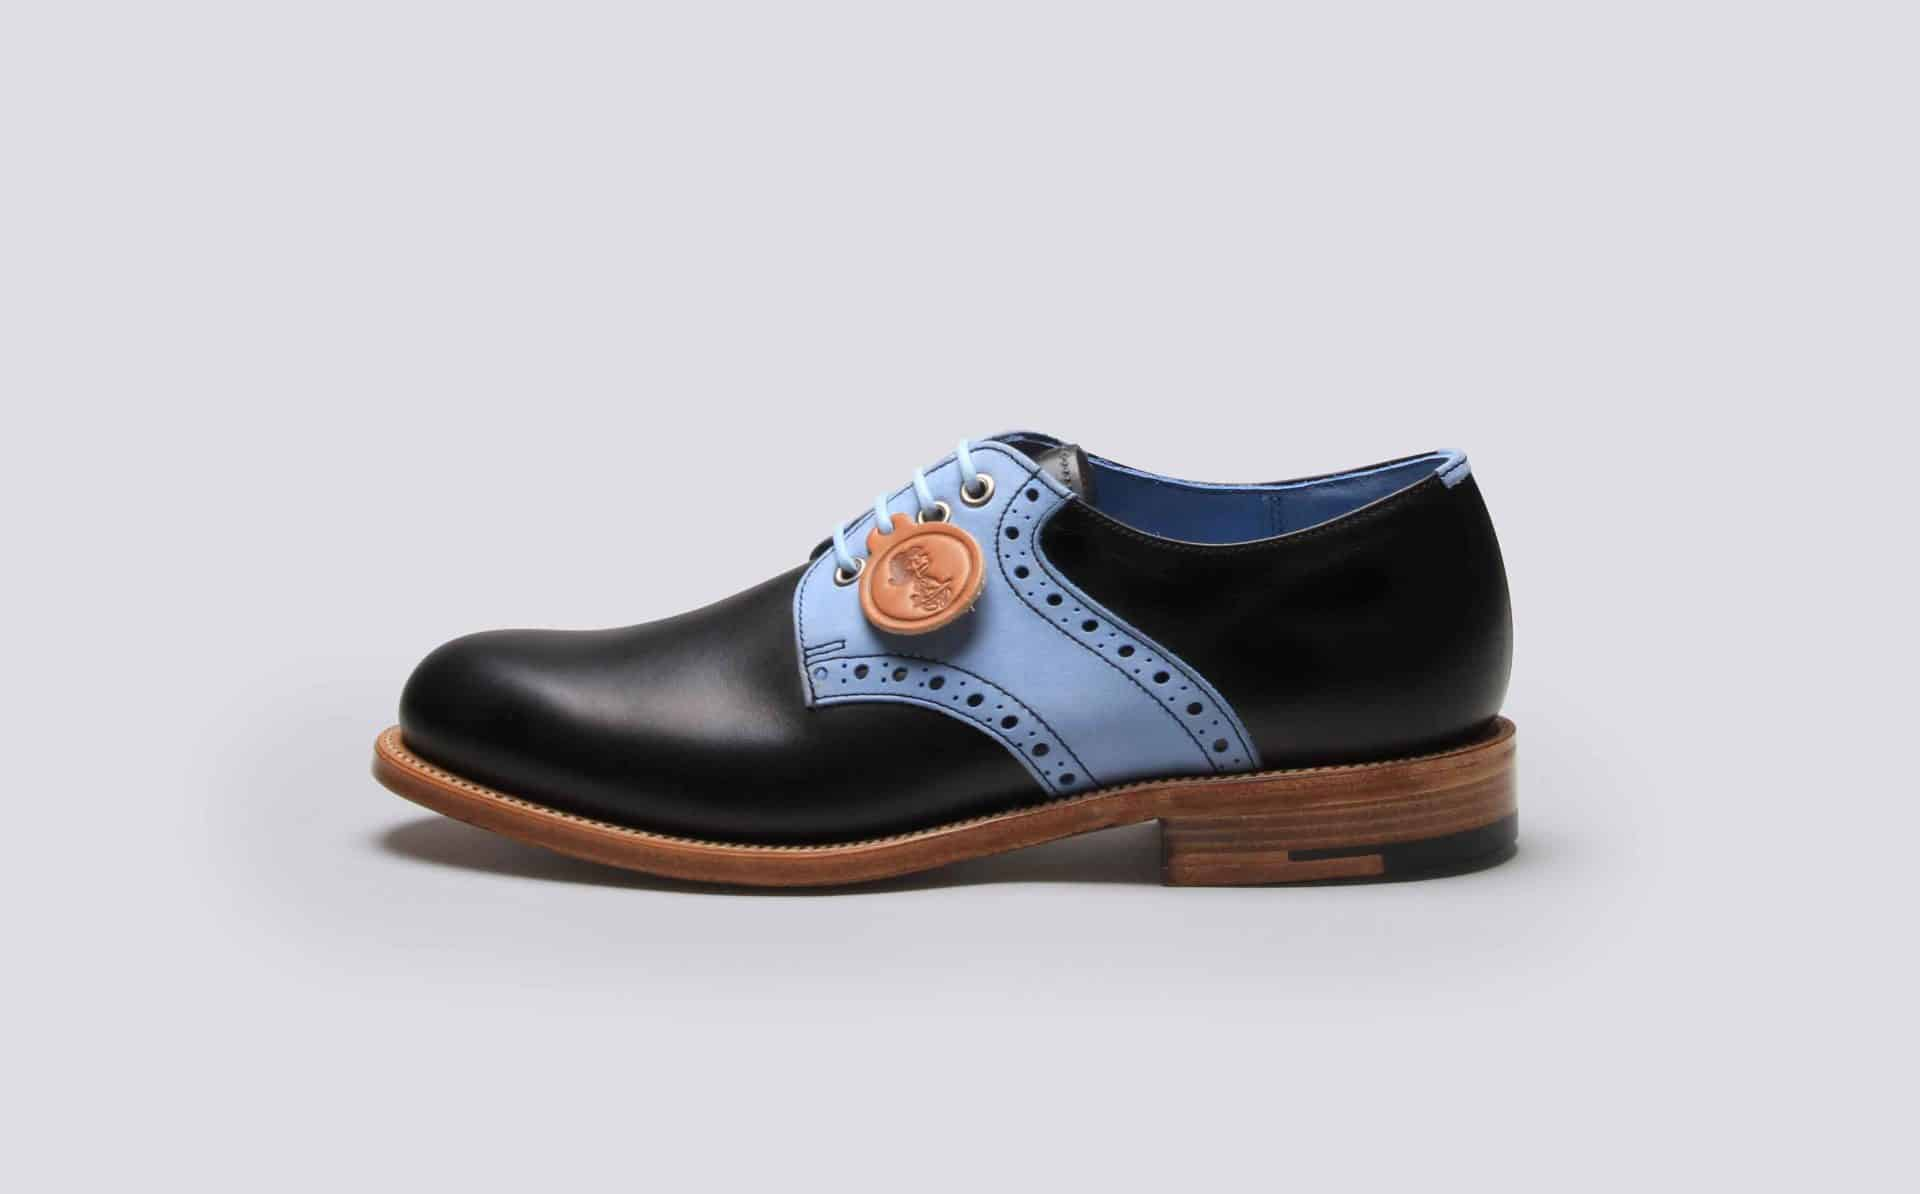 Grenson pays homage to Peanuts' gentle satiricism by teaming up with TSPTR.